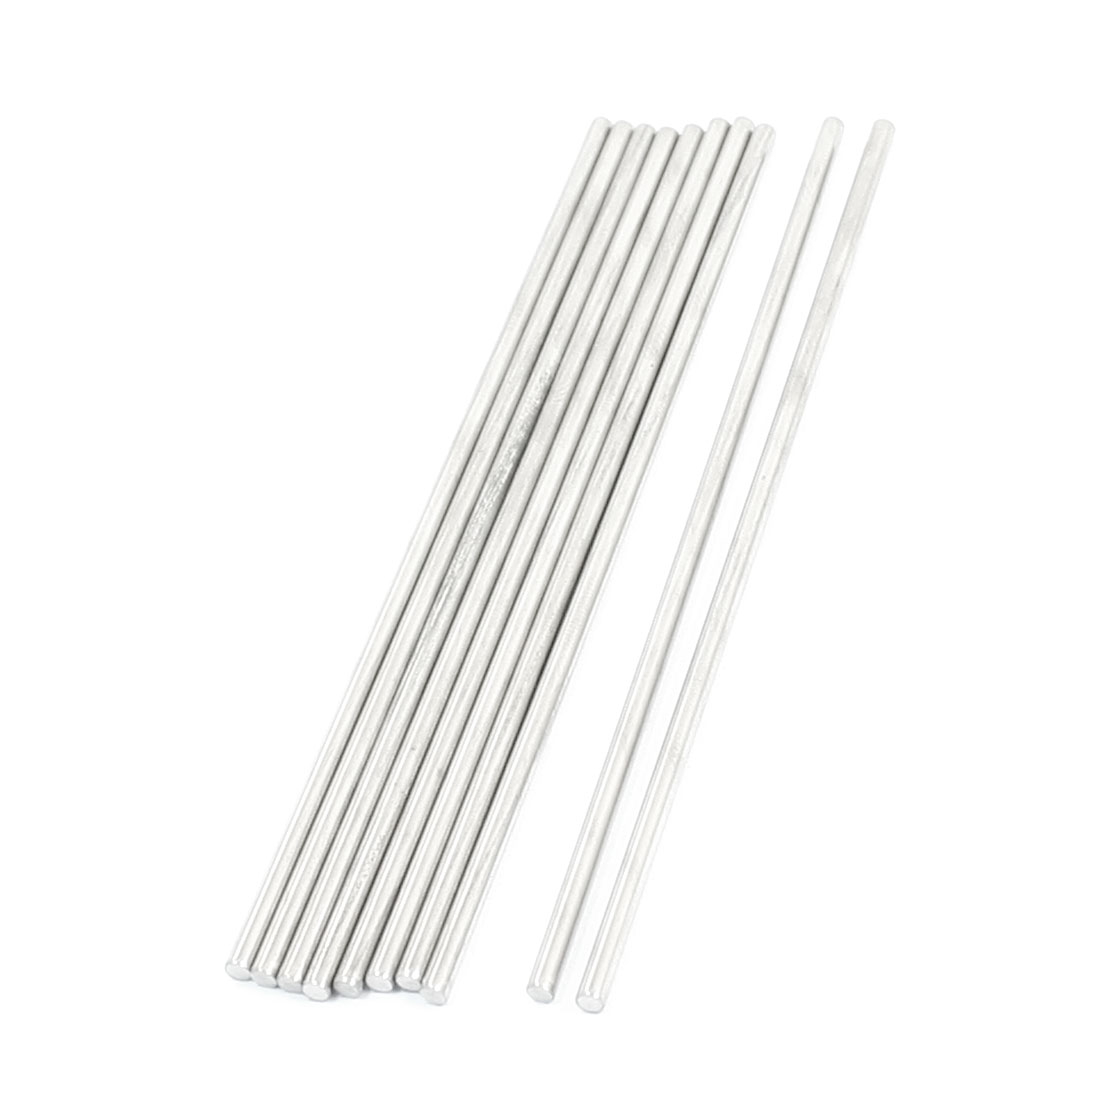 10pcs RC Model Airplane Spare Parts Stainless Steel Round Bar 110 x 2.5mm